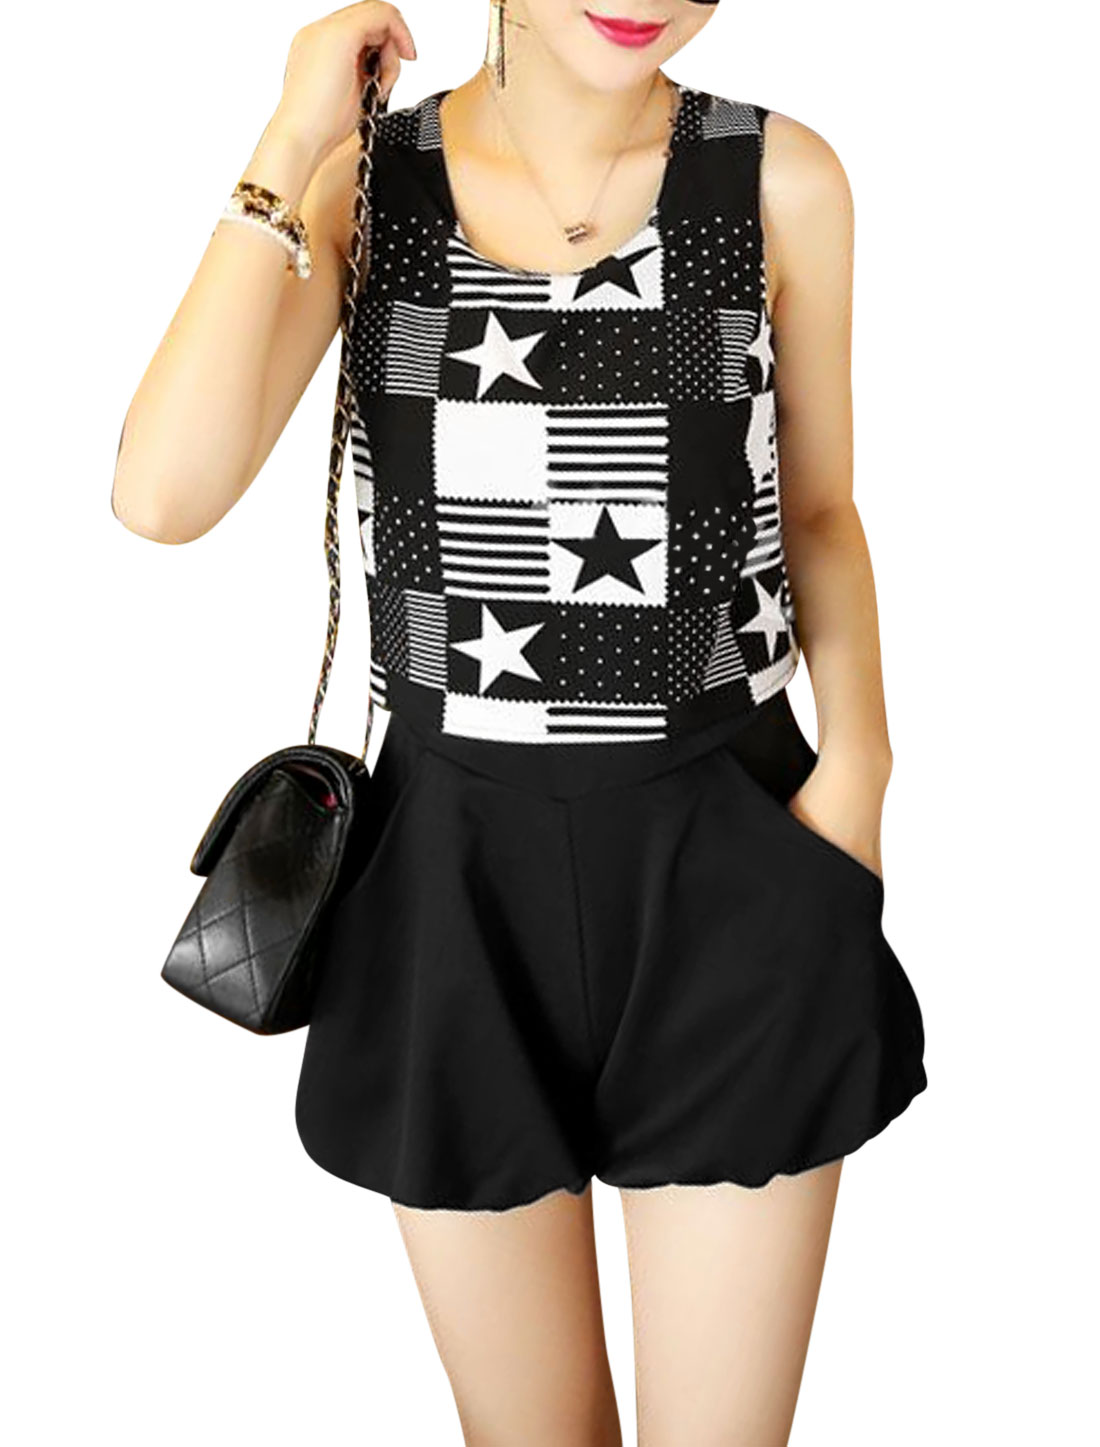 Lady Round Neck Chiffon Panel British Flag Pattern Romper White Black XS